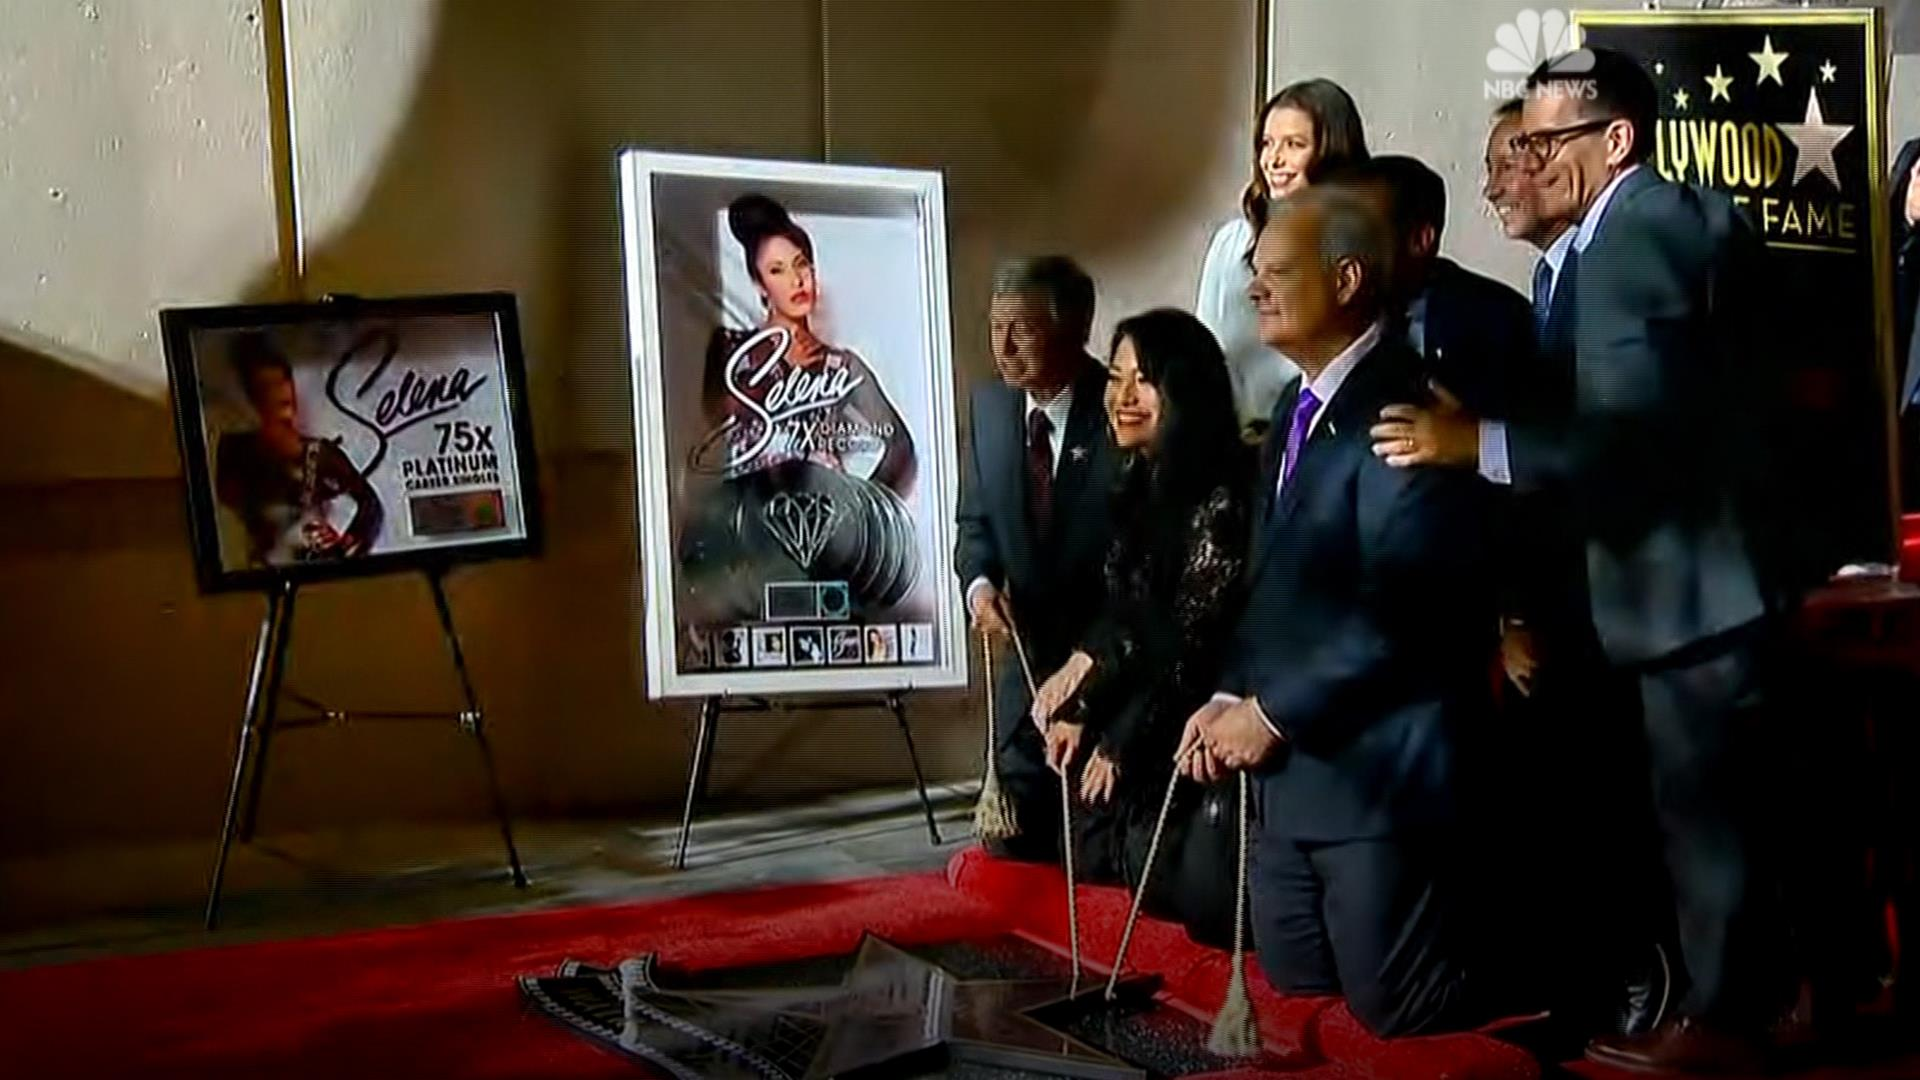 Selena forever: Iconic Tejano star's legacy lives on 23 years after her death